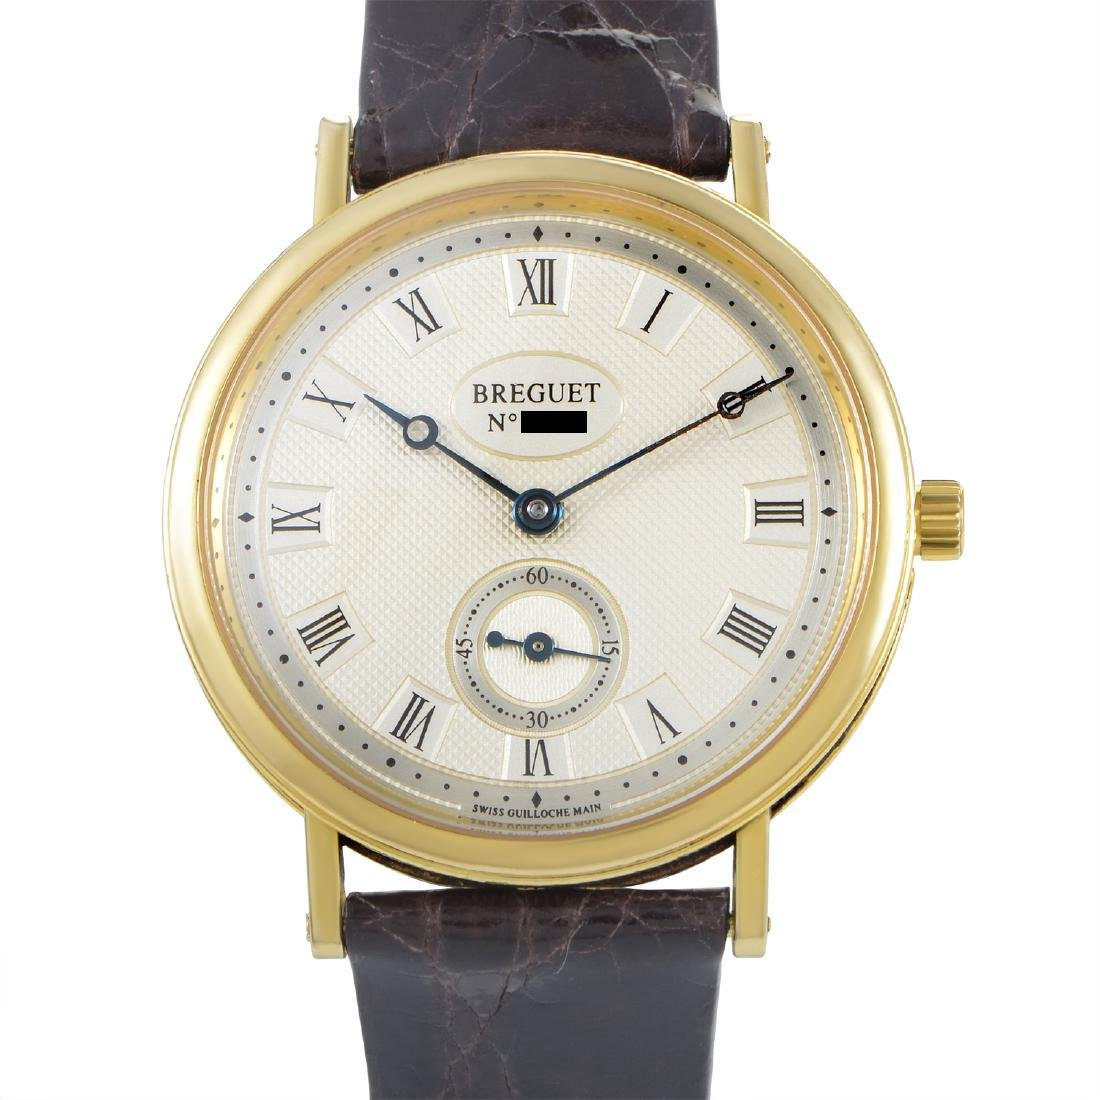 Breguet Classique Manually Wound Yellow Gold Watch